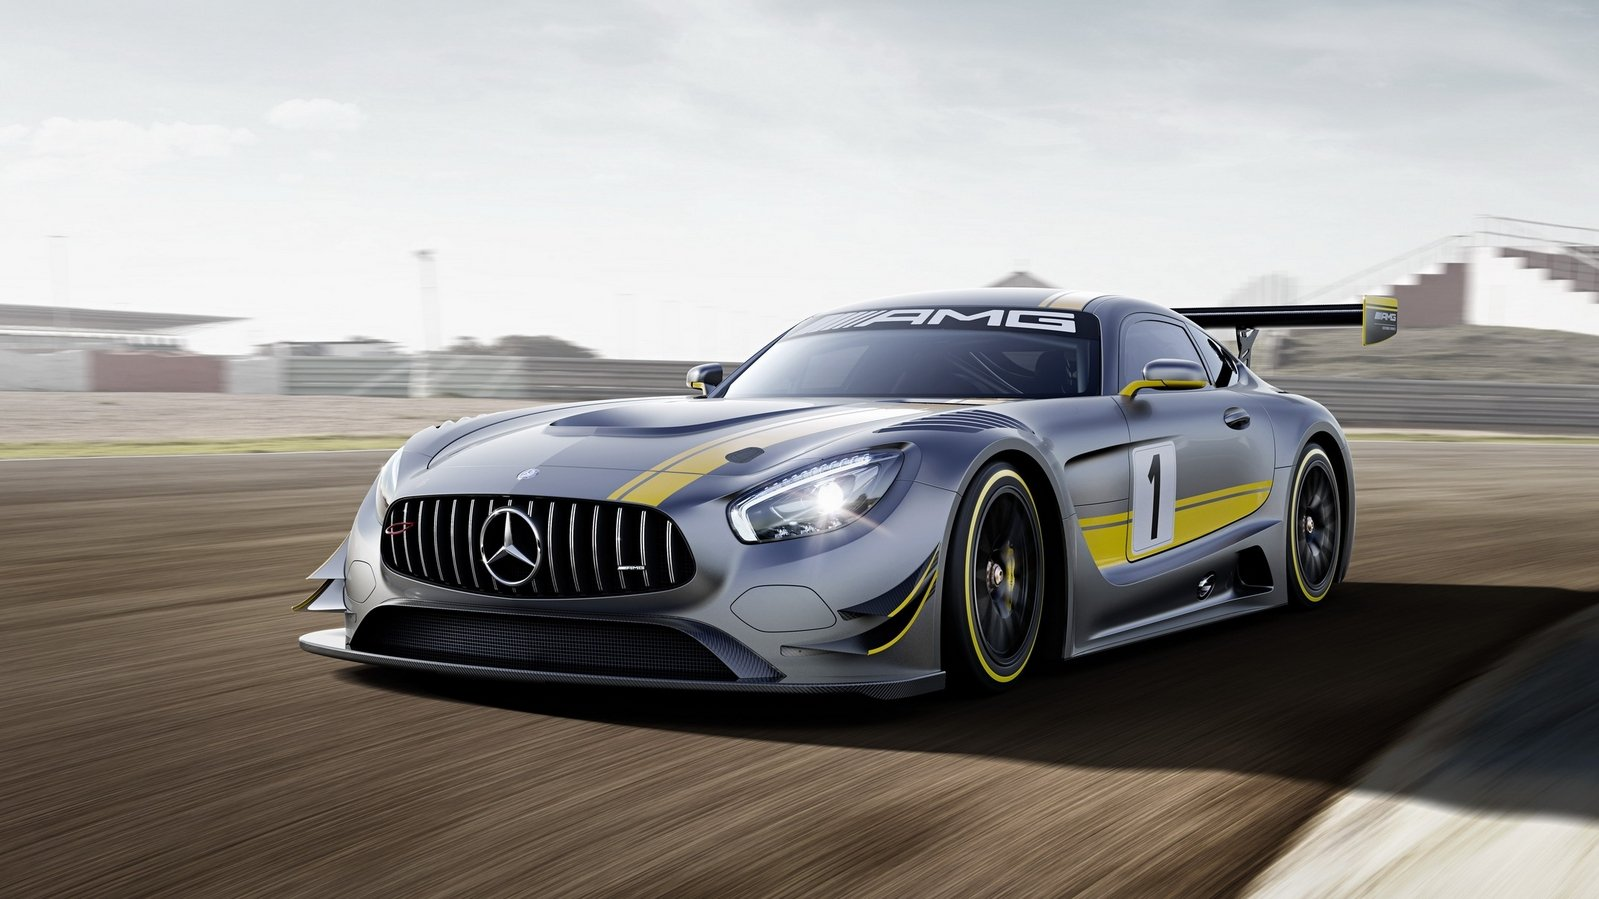 2016 mercedes amg gt3 picture 619112 car review top speed. Black Bedroom Furniture Sets. Home Design Ideas